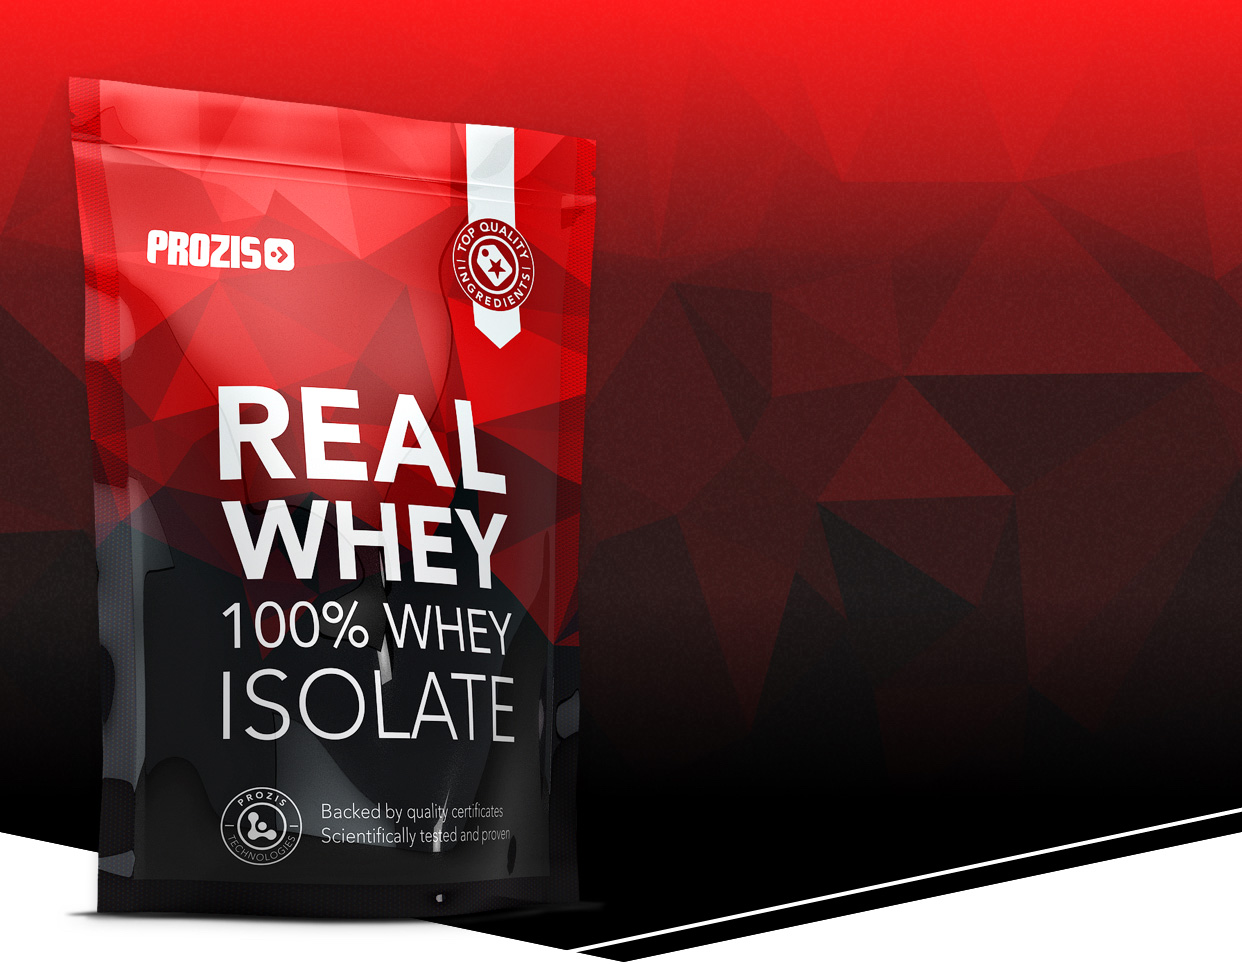 Prozis 100% Real Whey Isolate